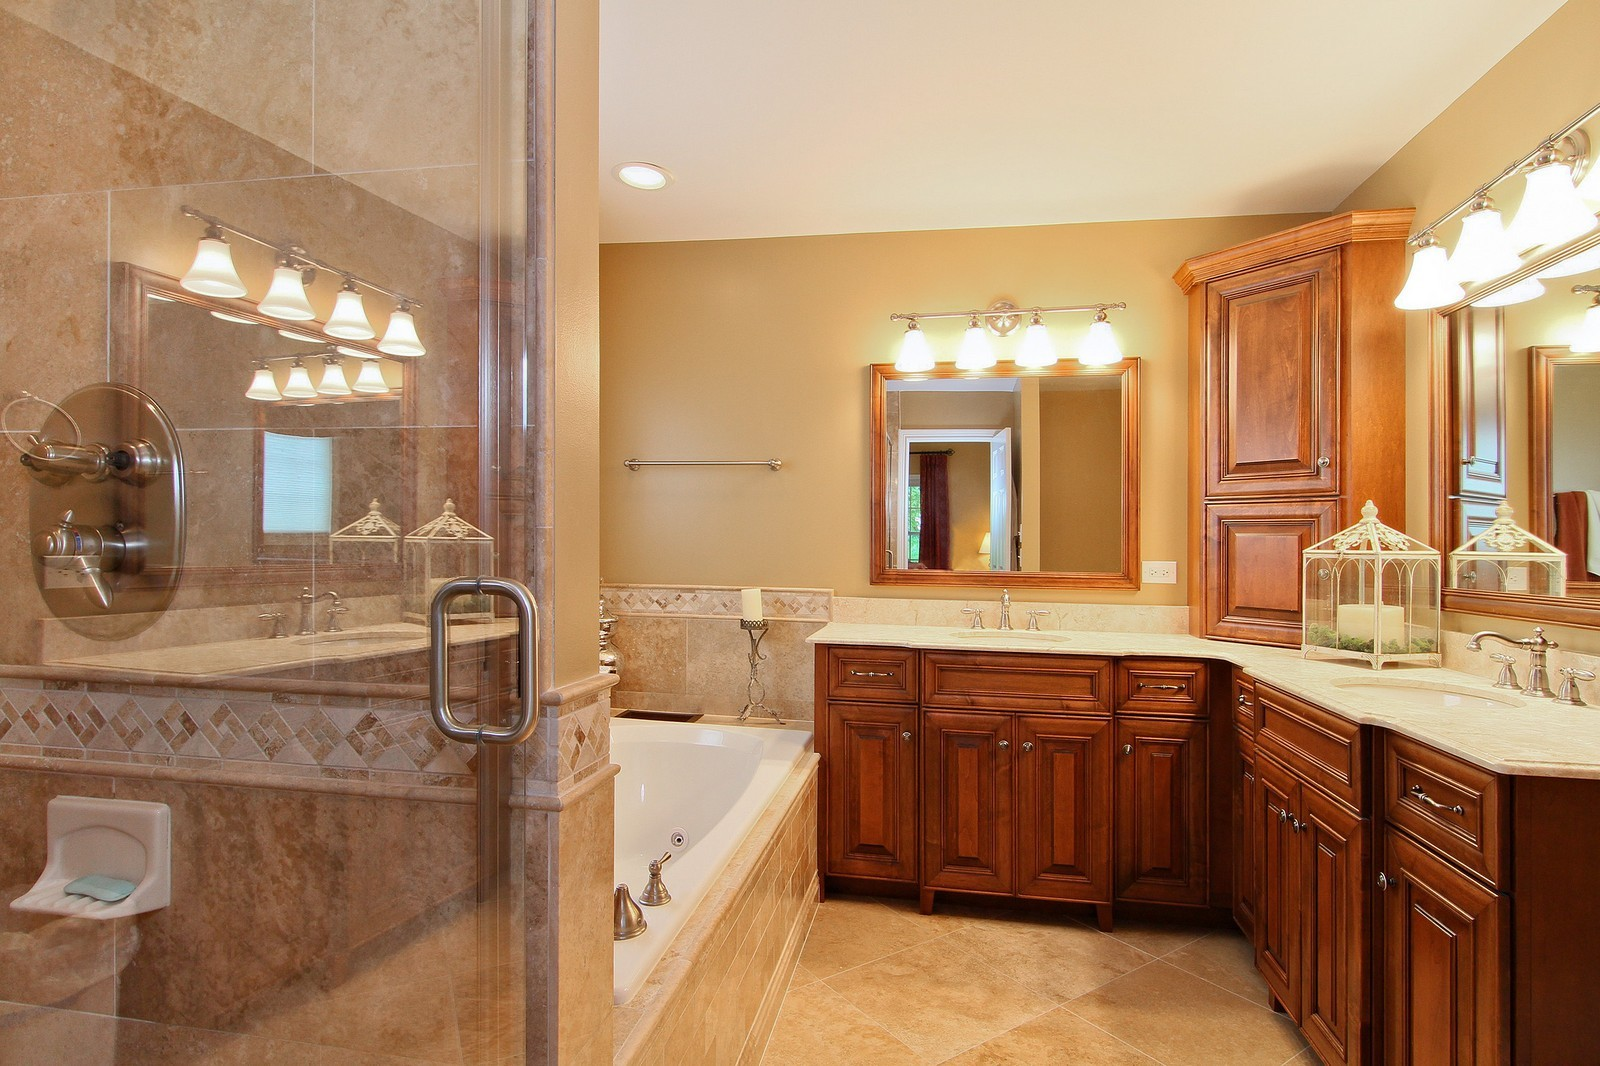 Real Estate Photography - 4915 Stanley Ave, Downers Grove, IL, 60515 - Master Bathroom